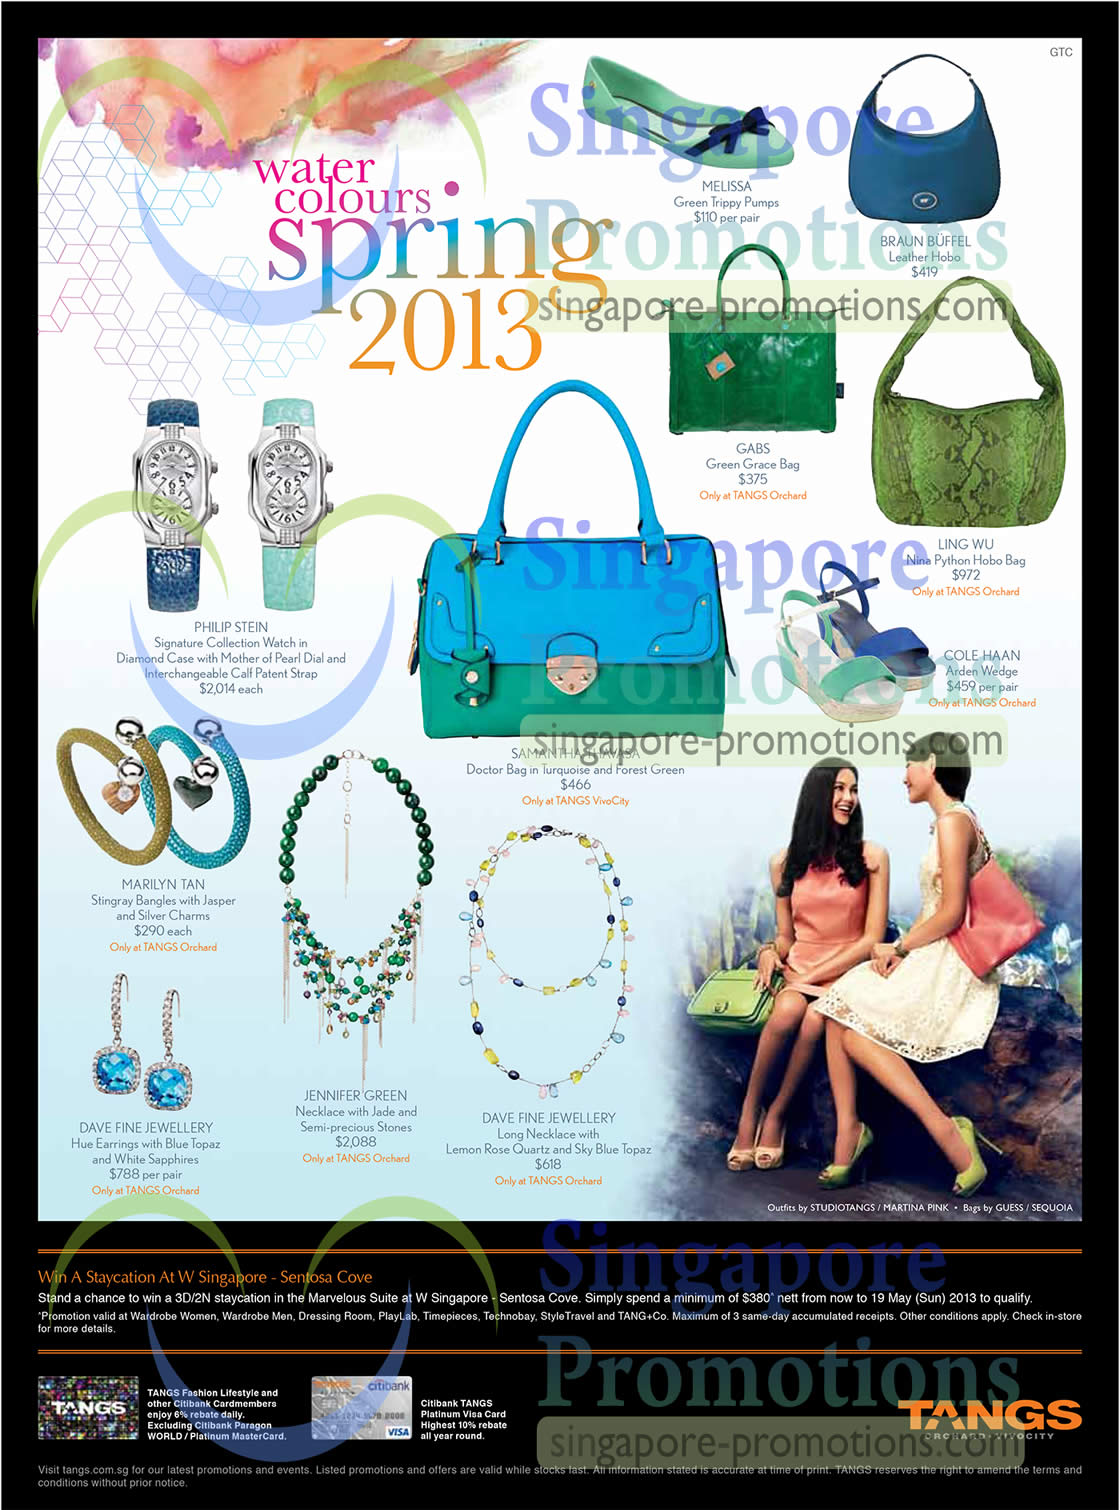 Melissa Green Trippy Pumps, Braun Buffel Leather Hobo, Gabs Green Grace Bag, Ling Wu Nina Python Hobo Bag, Cole Haan Arden Wedge, Samantha Thavasa Doctor Bag, Philip Stein Signature Collection Watch, Marilyn Tan Stingray Bangles, Dave Fine Jewellery Hue Earrings, Jennifer Green Necklace, Dave Fine Jewellery Long Necklace